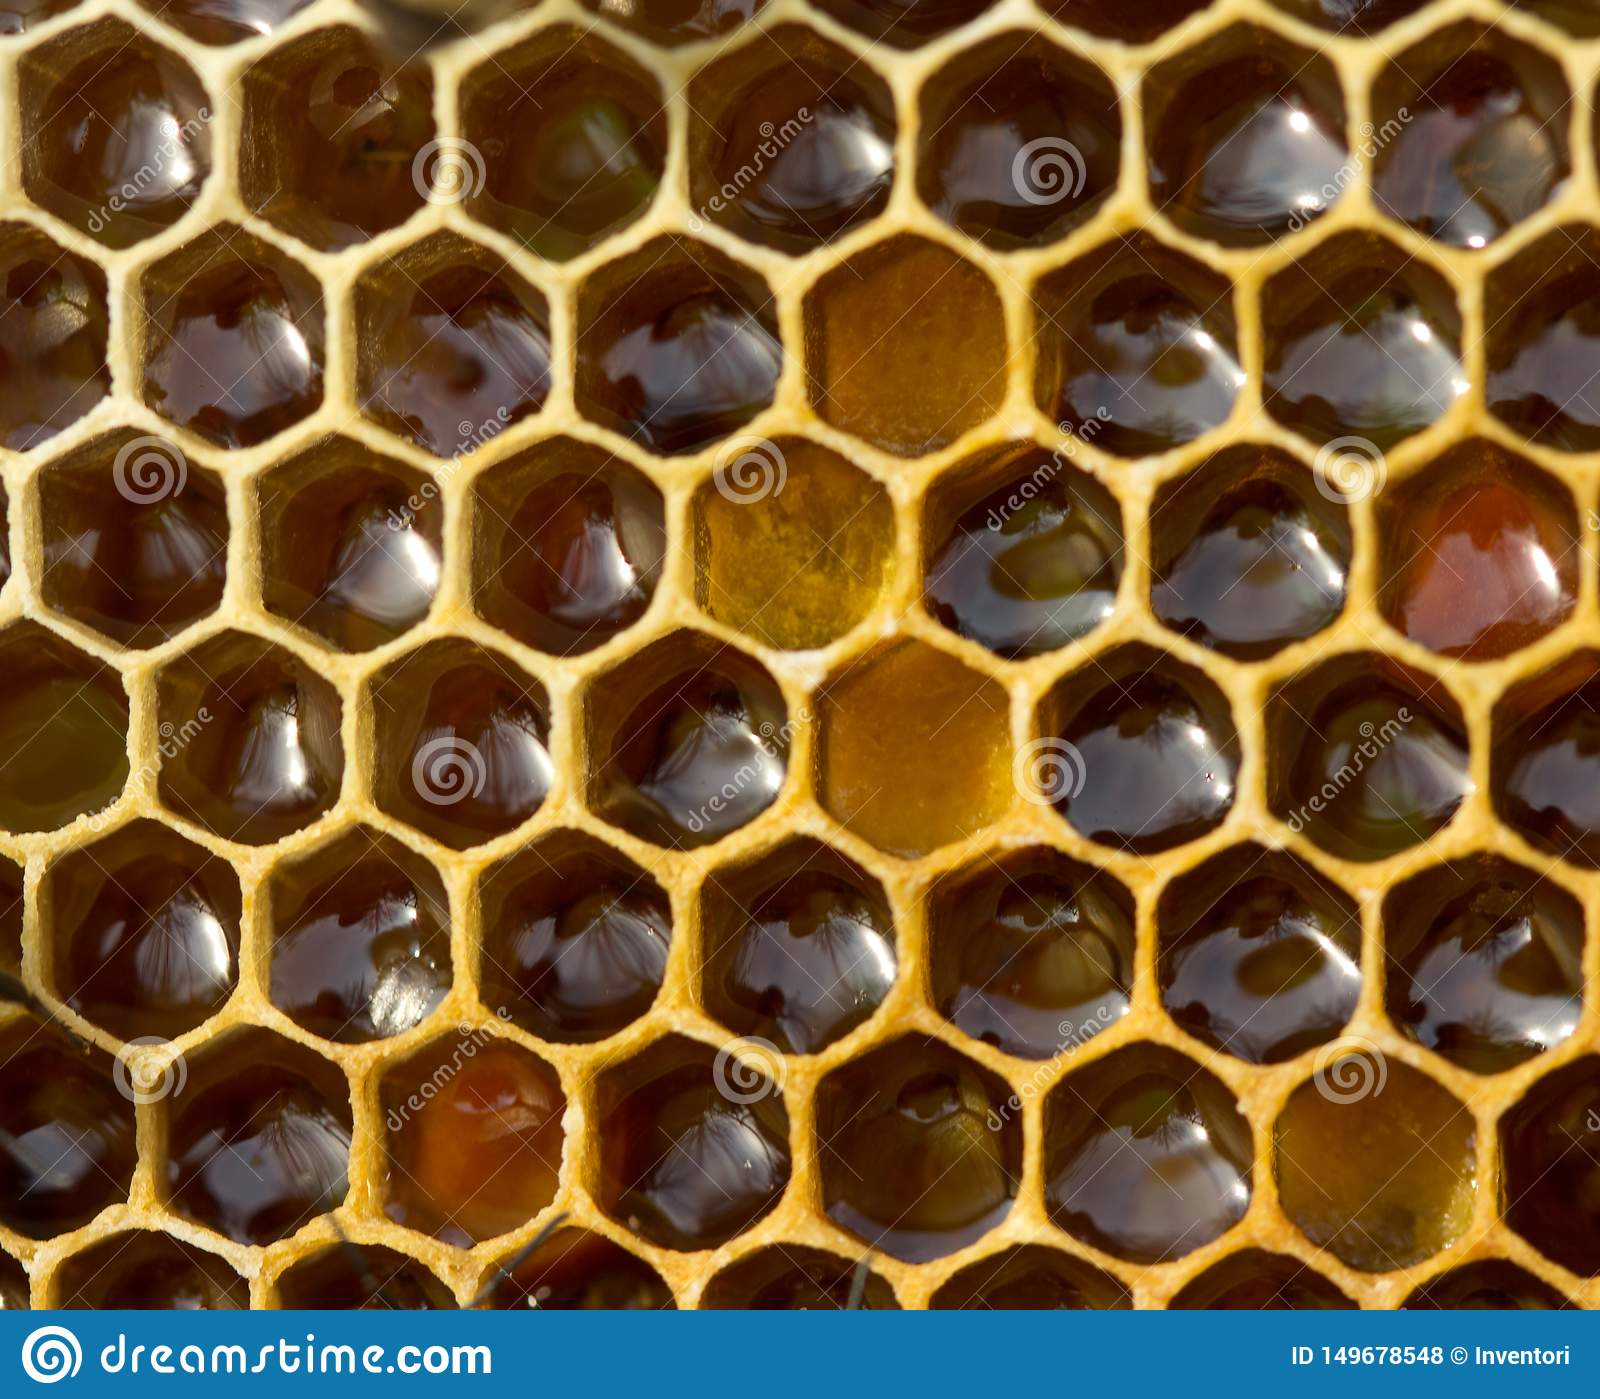 Honey, which the bees have learned from the nectar collected from the flowers